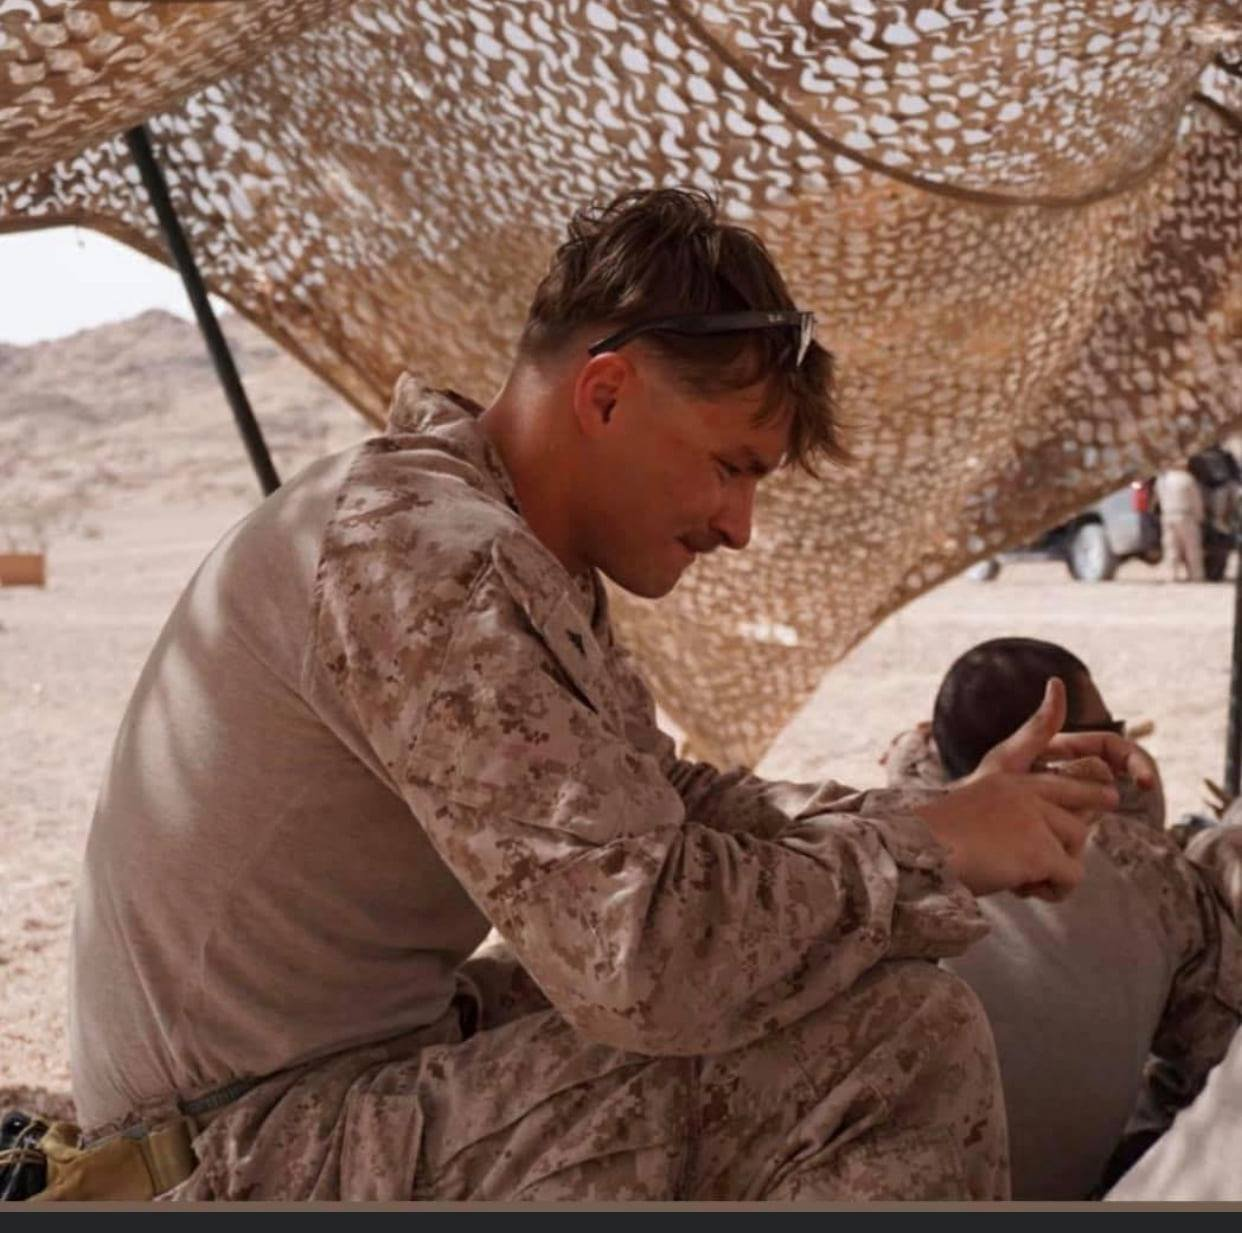 Family of fallen Marine Cpl. Page posts statement